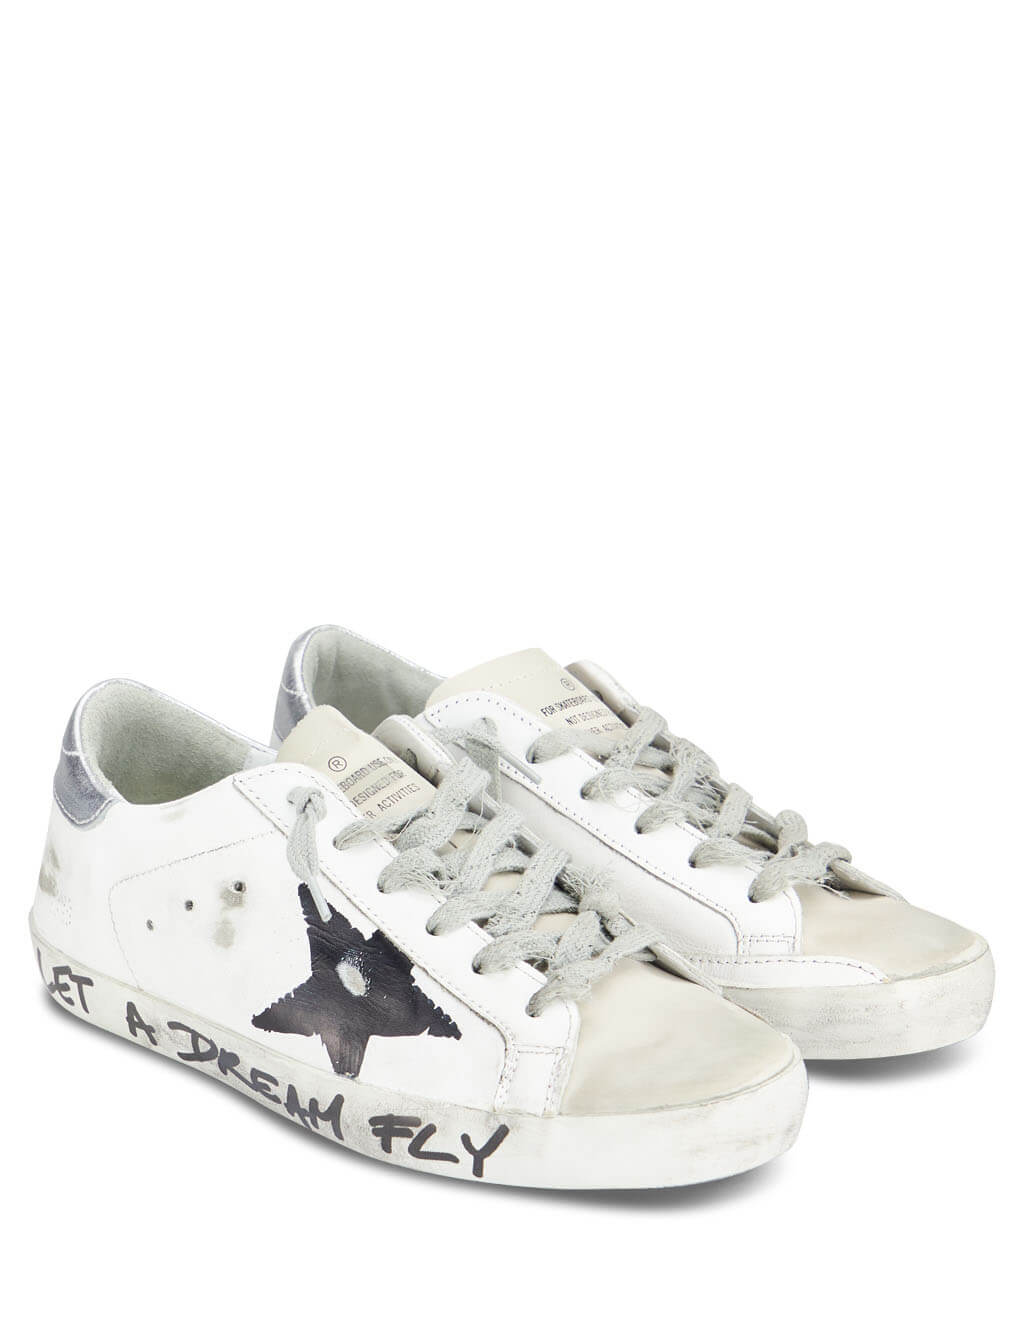 Golden Goose Deluxe Brand Women's Giulio Fashion White Superstar Sneakers G35WS590Q27